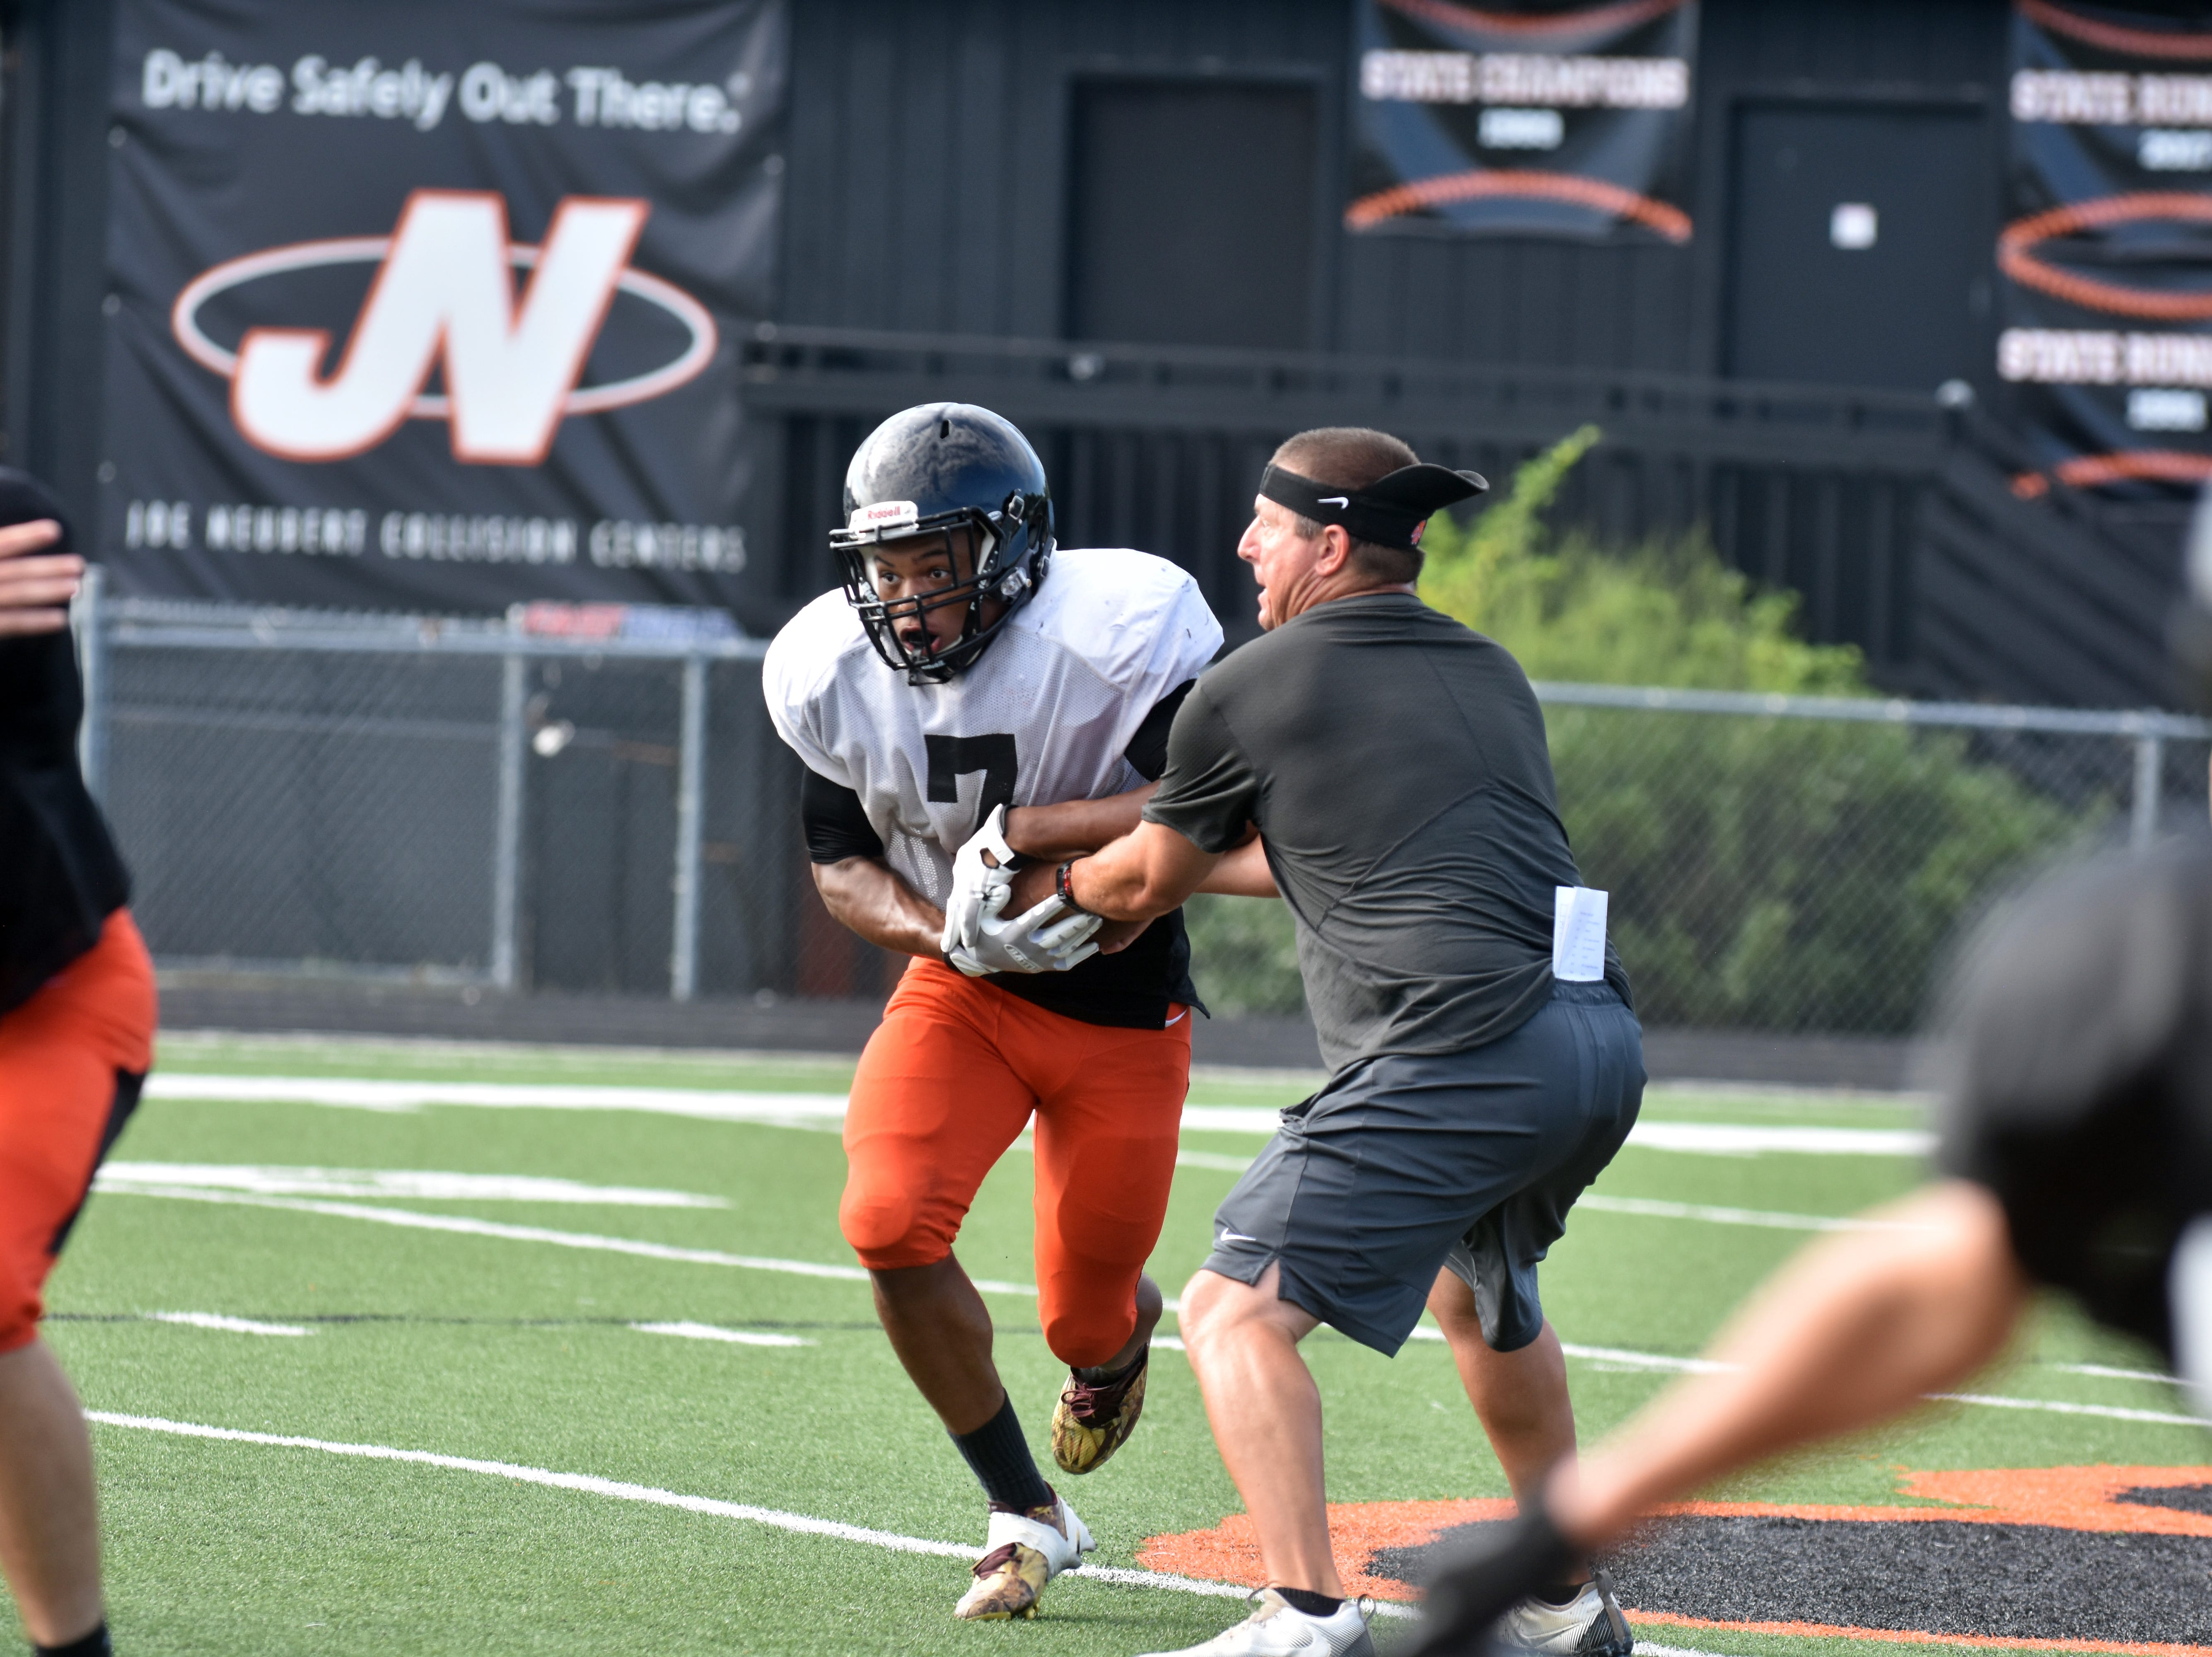 Powell High player Jordan Brown takes the hand-off from coach Matt Lowe during practice.